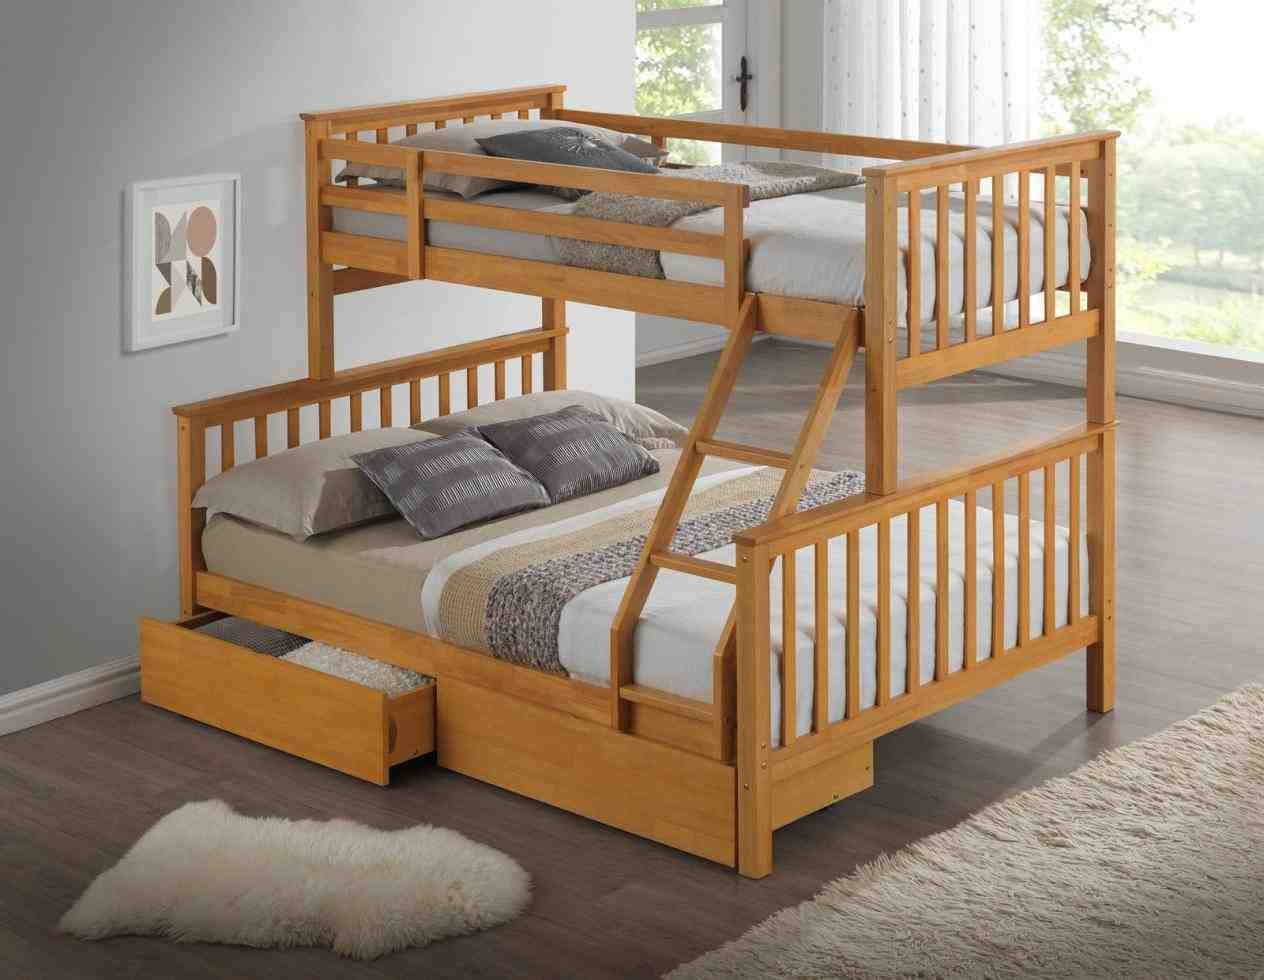 30 Best Place To Bunk Beds Online Interior Designs For Bedrooms Check More At